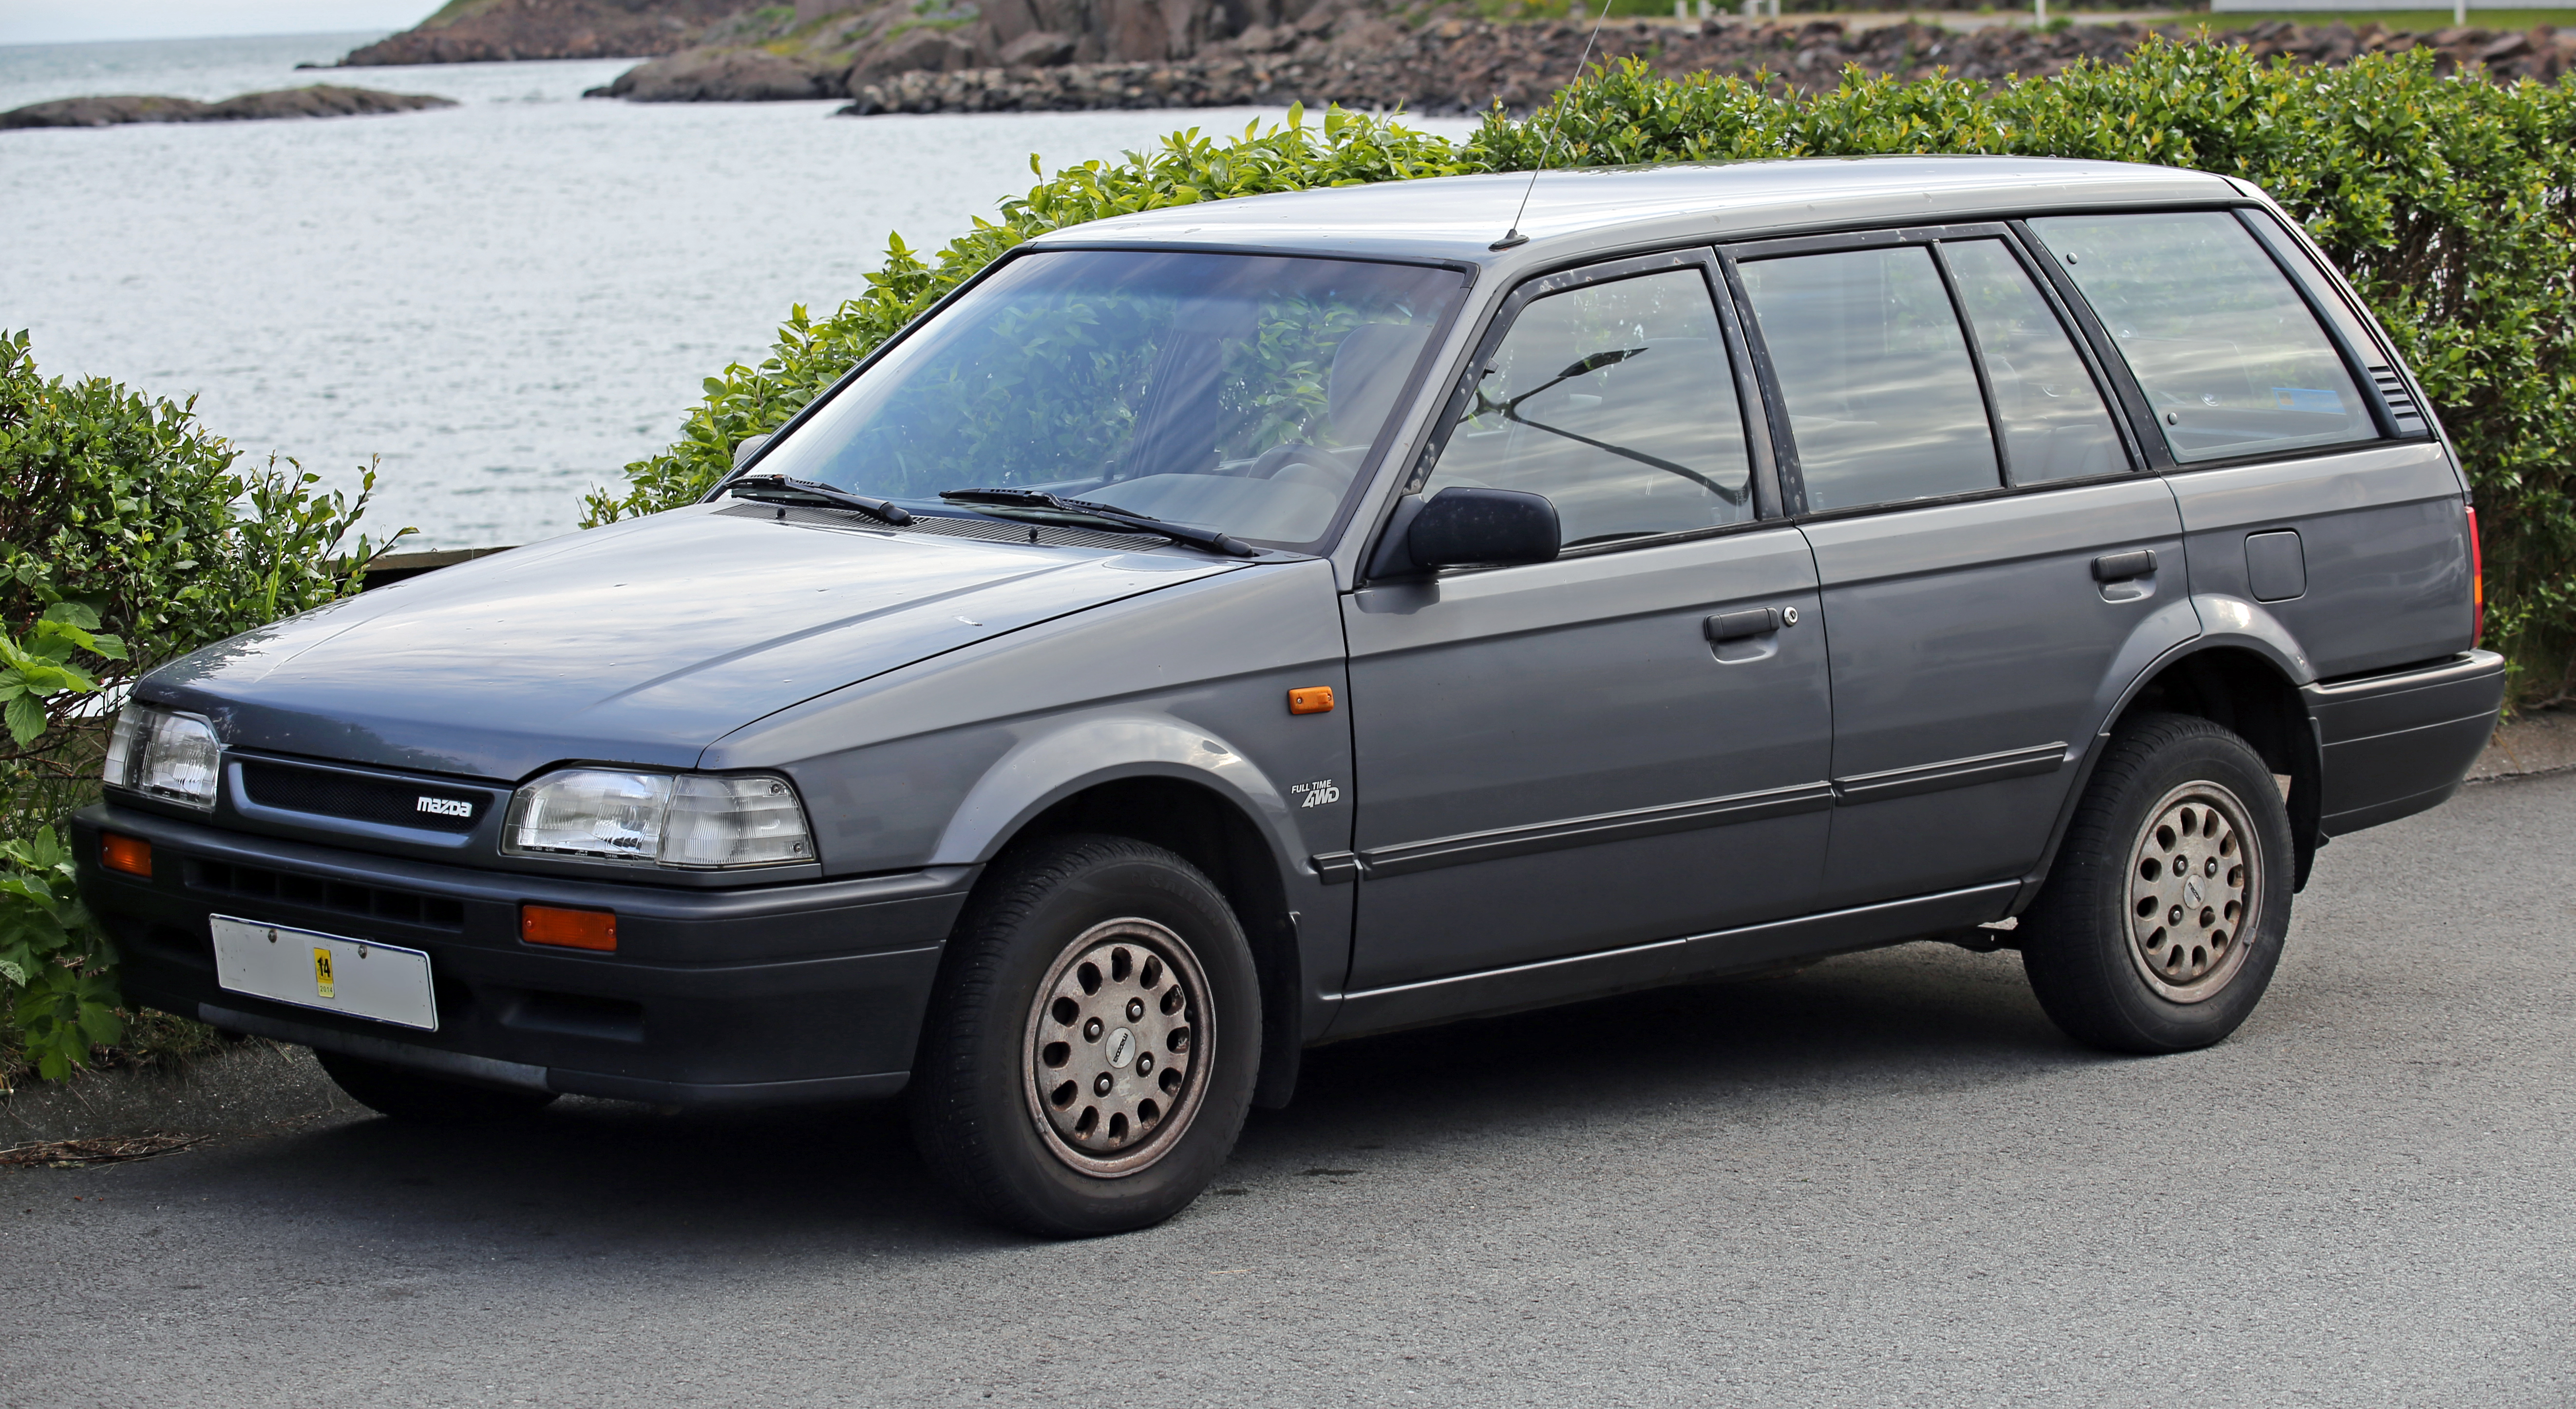 file:1994 mazda 323 wagon full time 4wd front - wikimedia commons